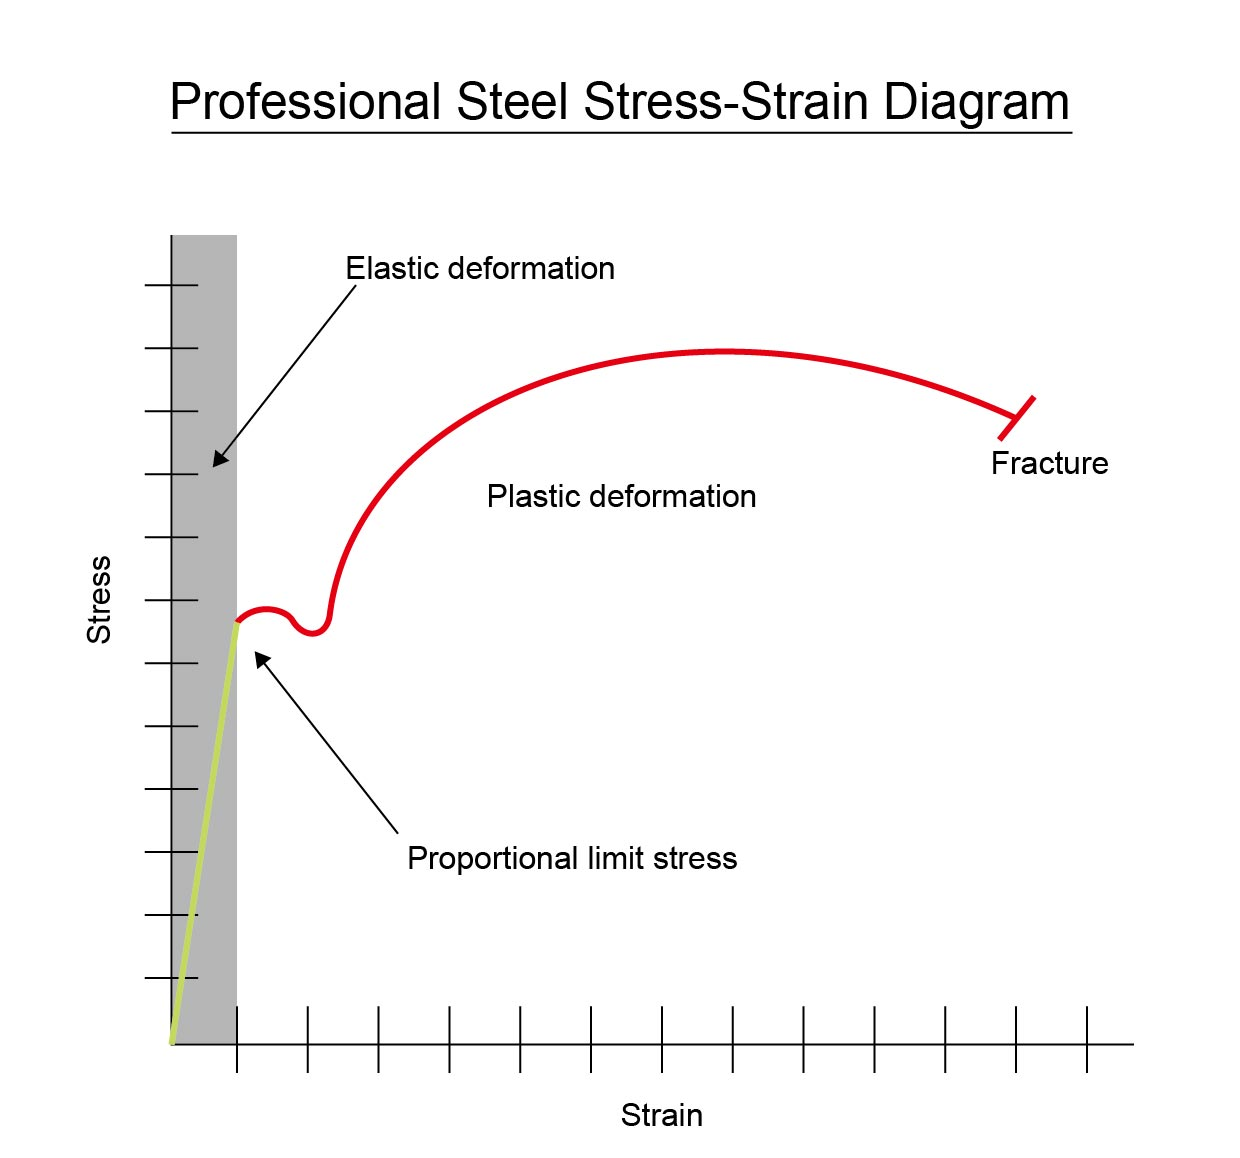 stress strain diagram for steel pioneer deh p7800mp wiring professional durability 1  use and storage in the